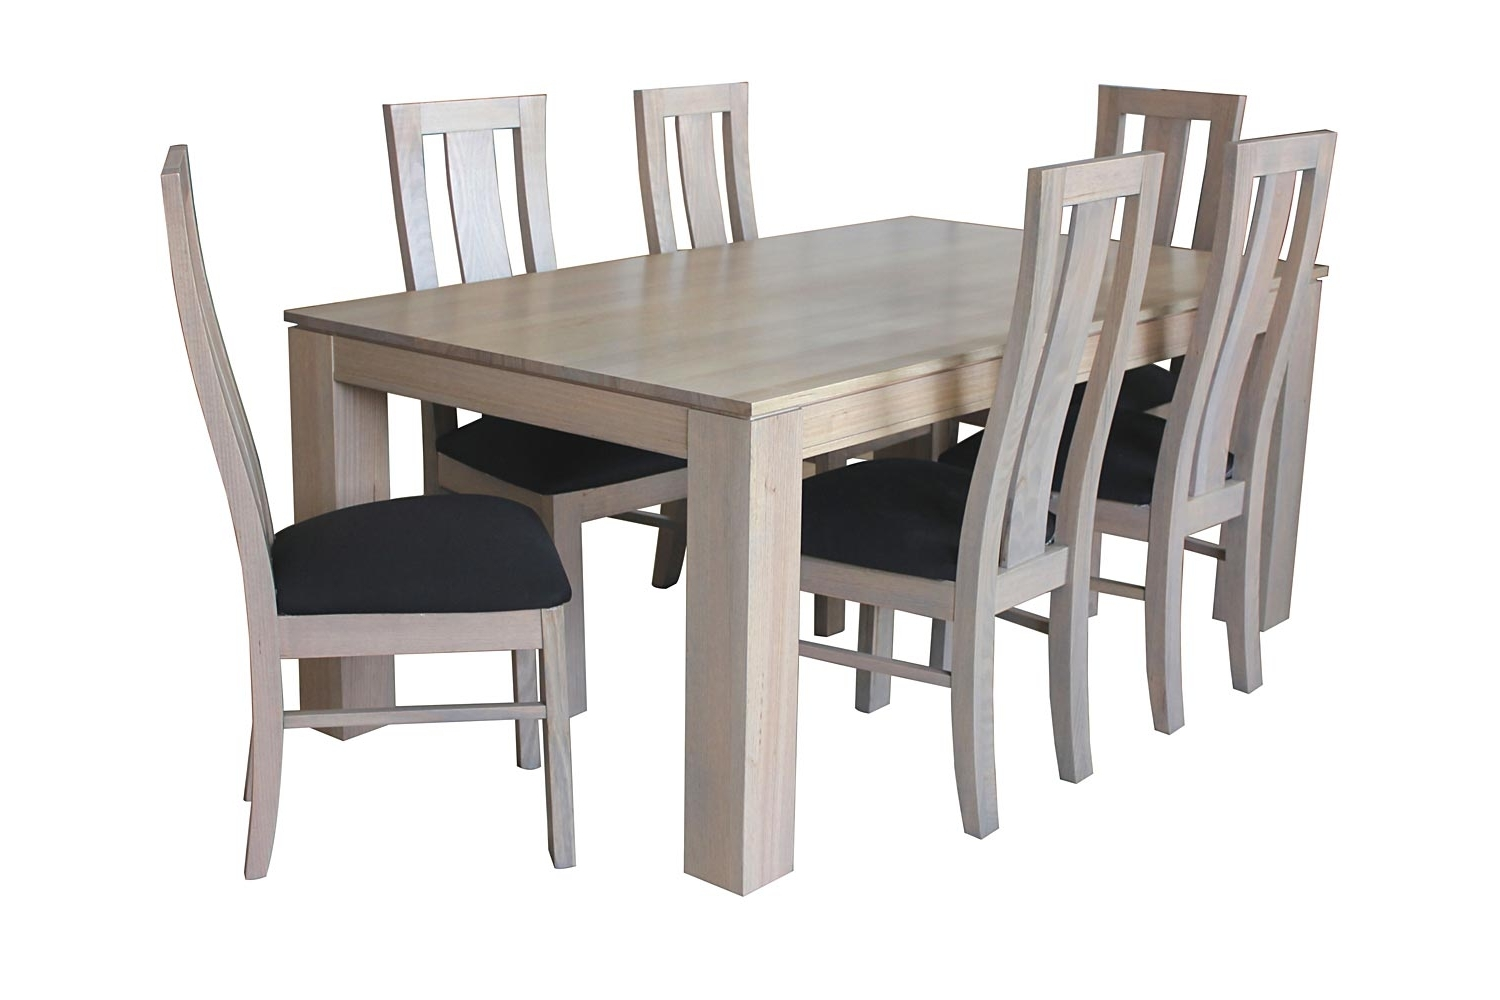 Trendy Kingston Dining Setting – Tessa Furniture Within Kingston Dining Tables And Chairs (View 10 of 25)